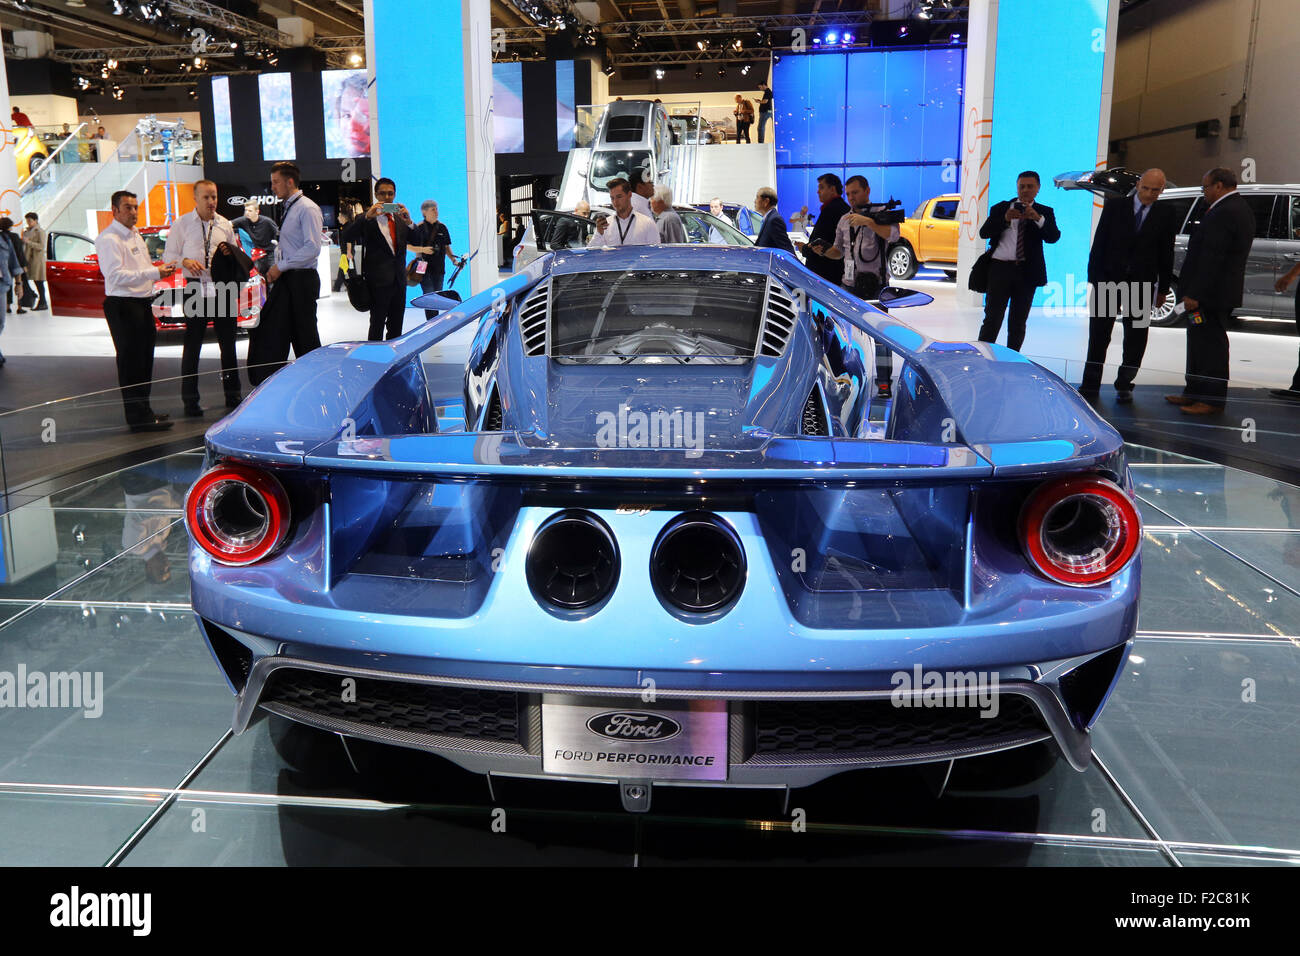 Francfort/M, 16.09.2015 - Ford GT concept-car à la Ford stand à la 66e International Motor Show (IAA 2015 Photo Stock